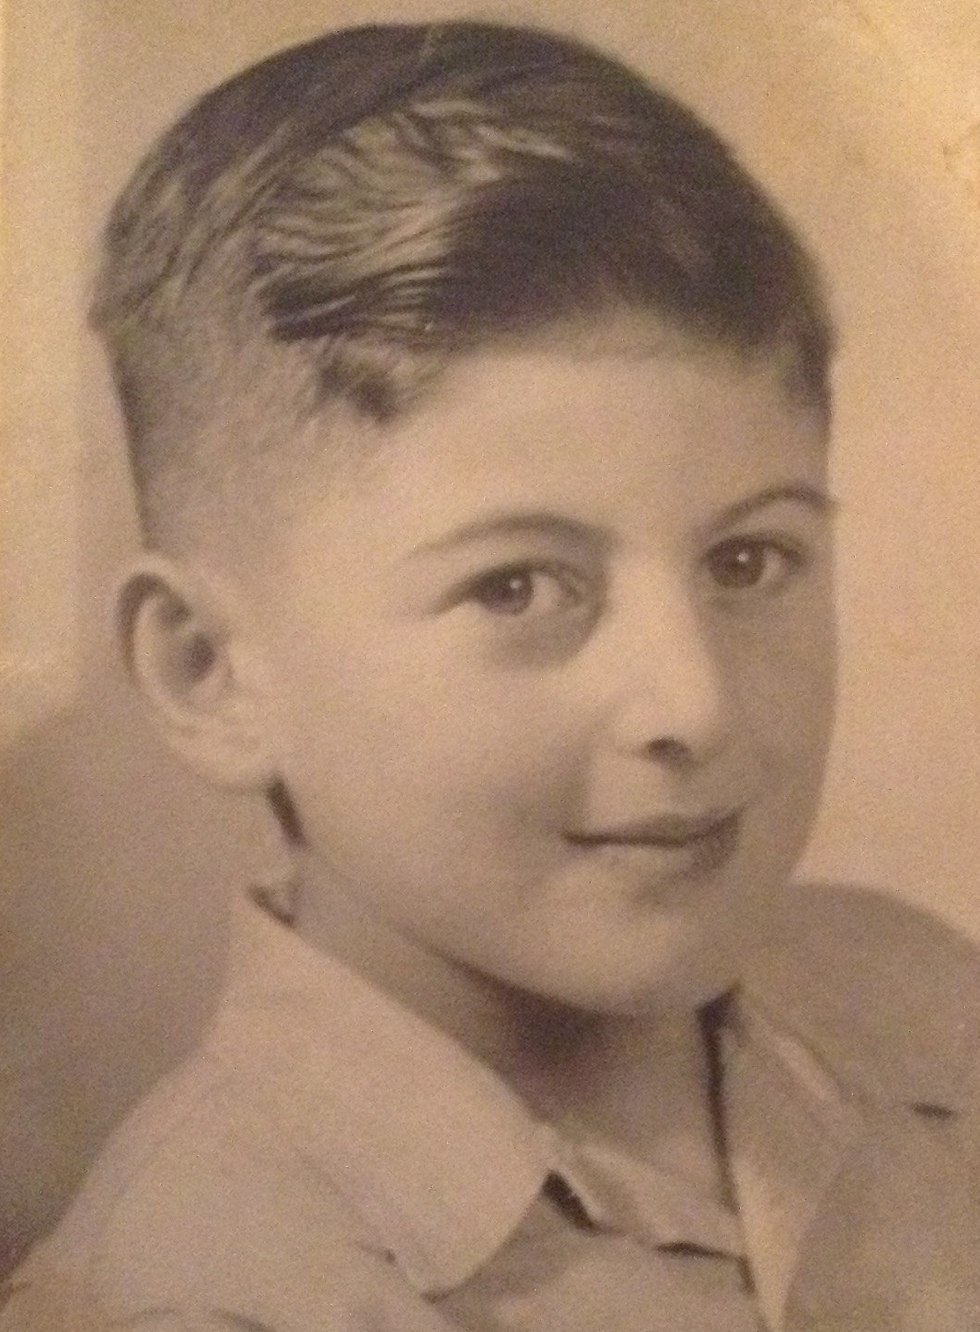 Salo Muller as a child